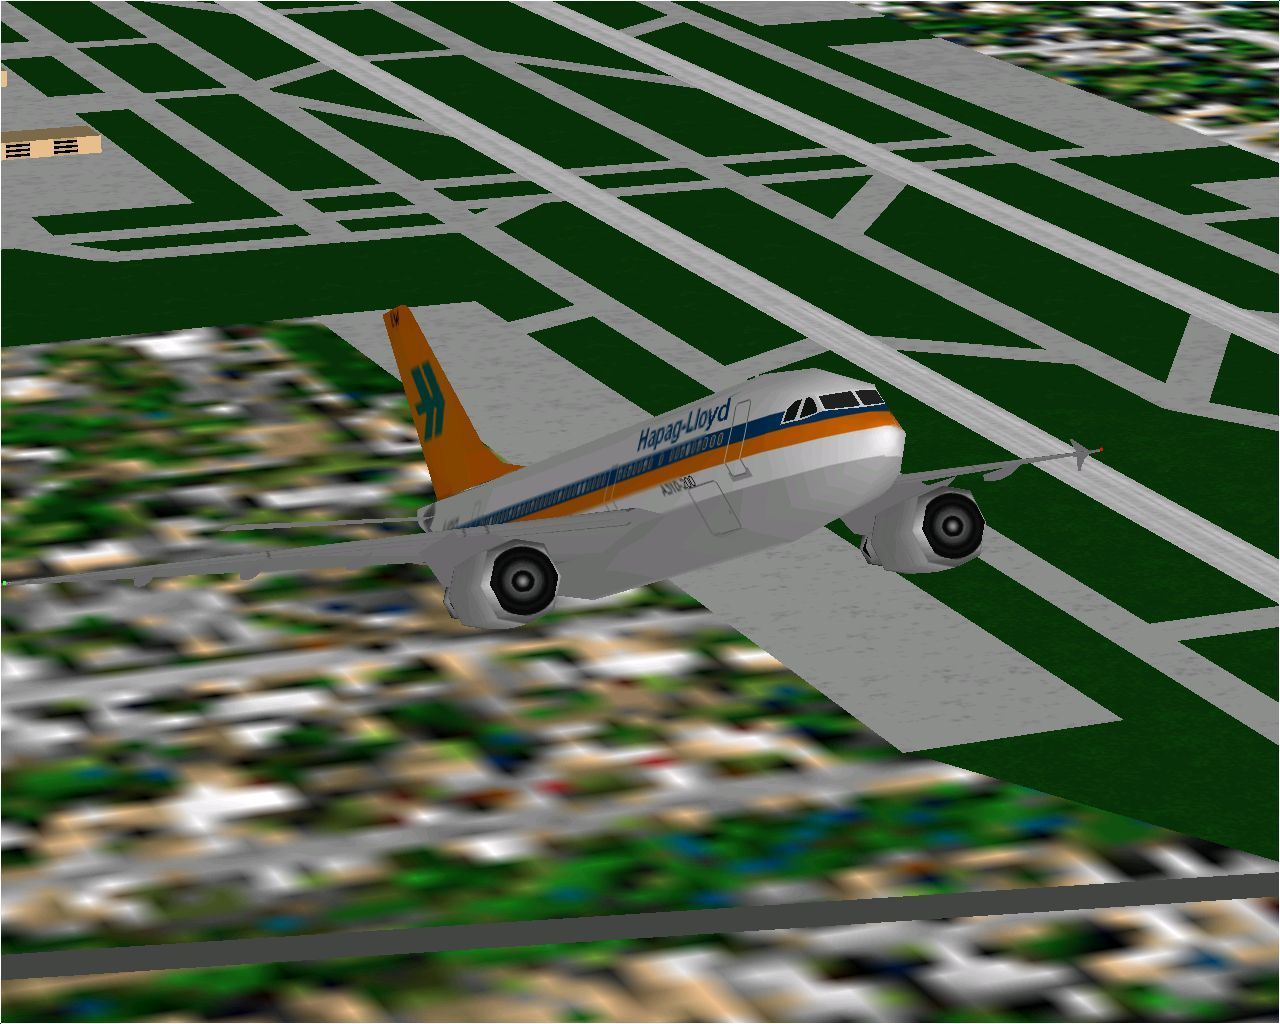 Airbus 2000: Special Edition Windows The Airbus A310-204 in Hapag-Lloyd livery as flown in Microsoft Flight Simulator 98